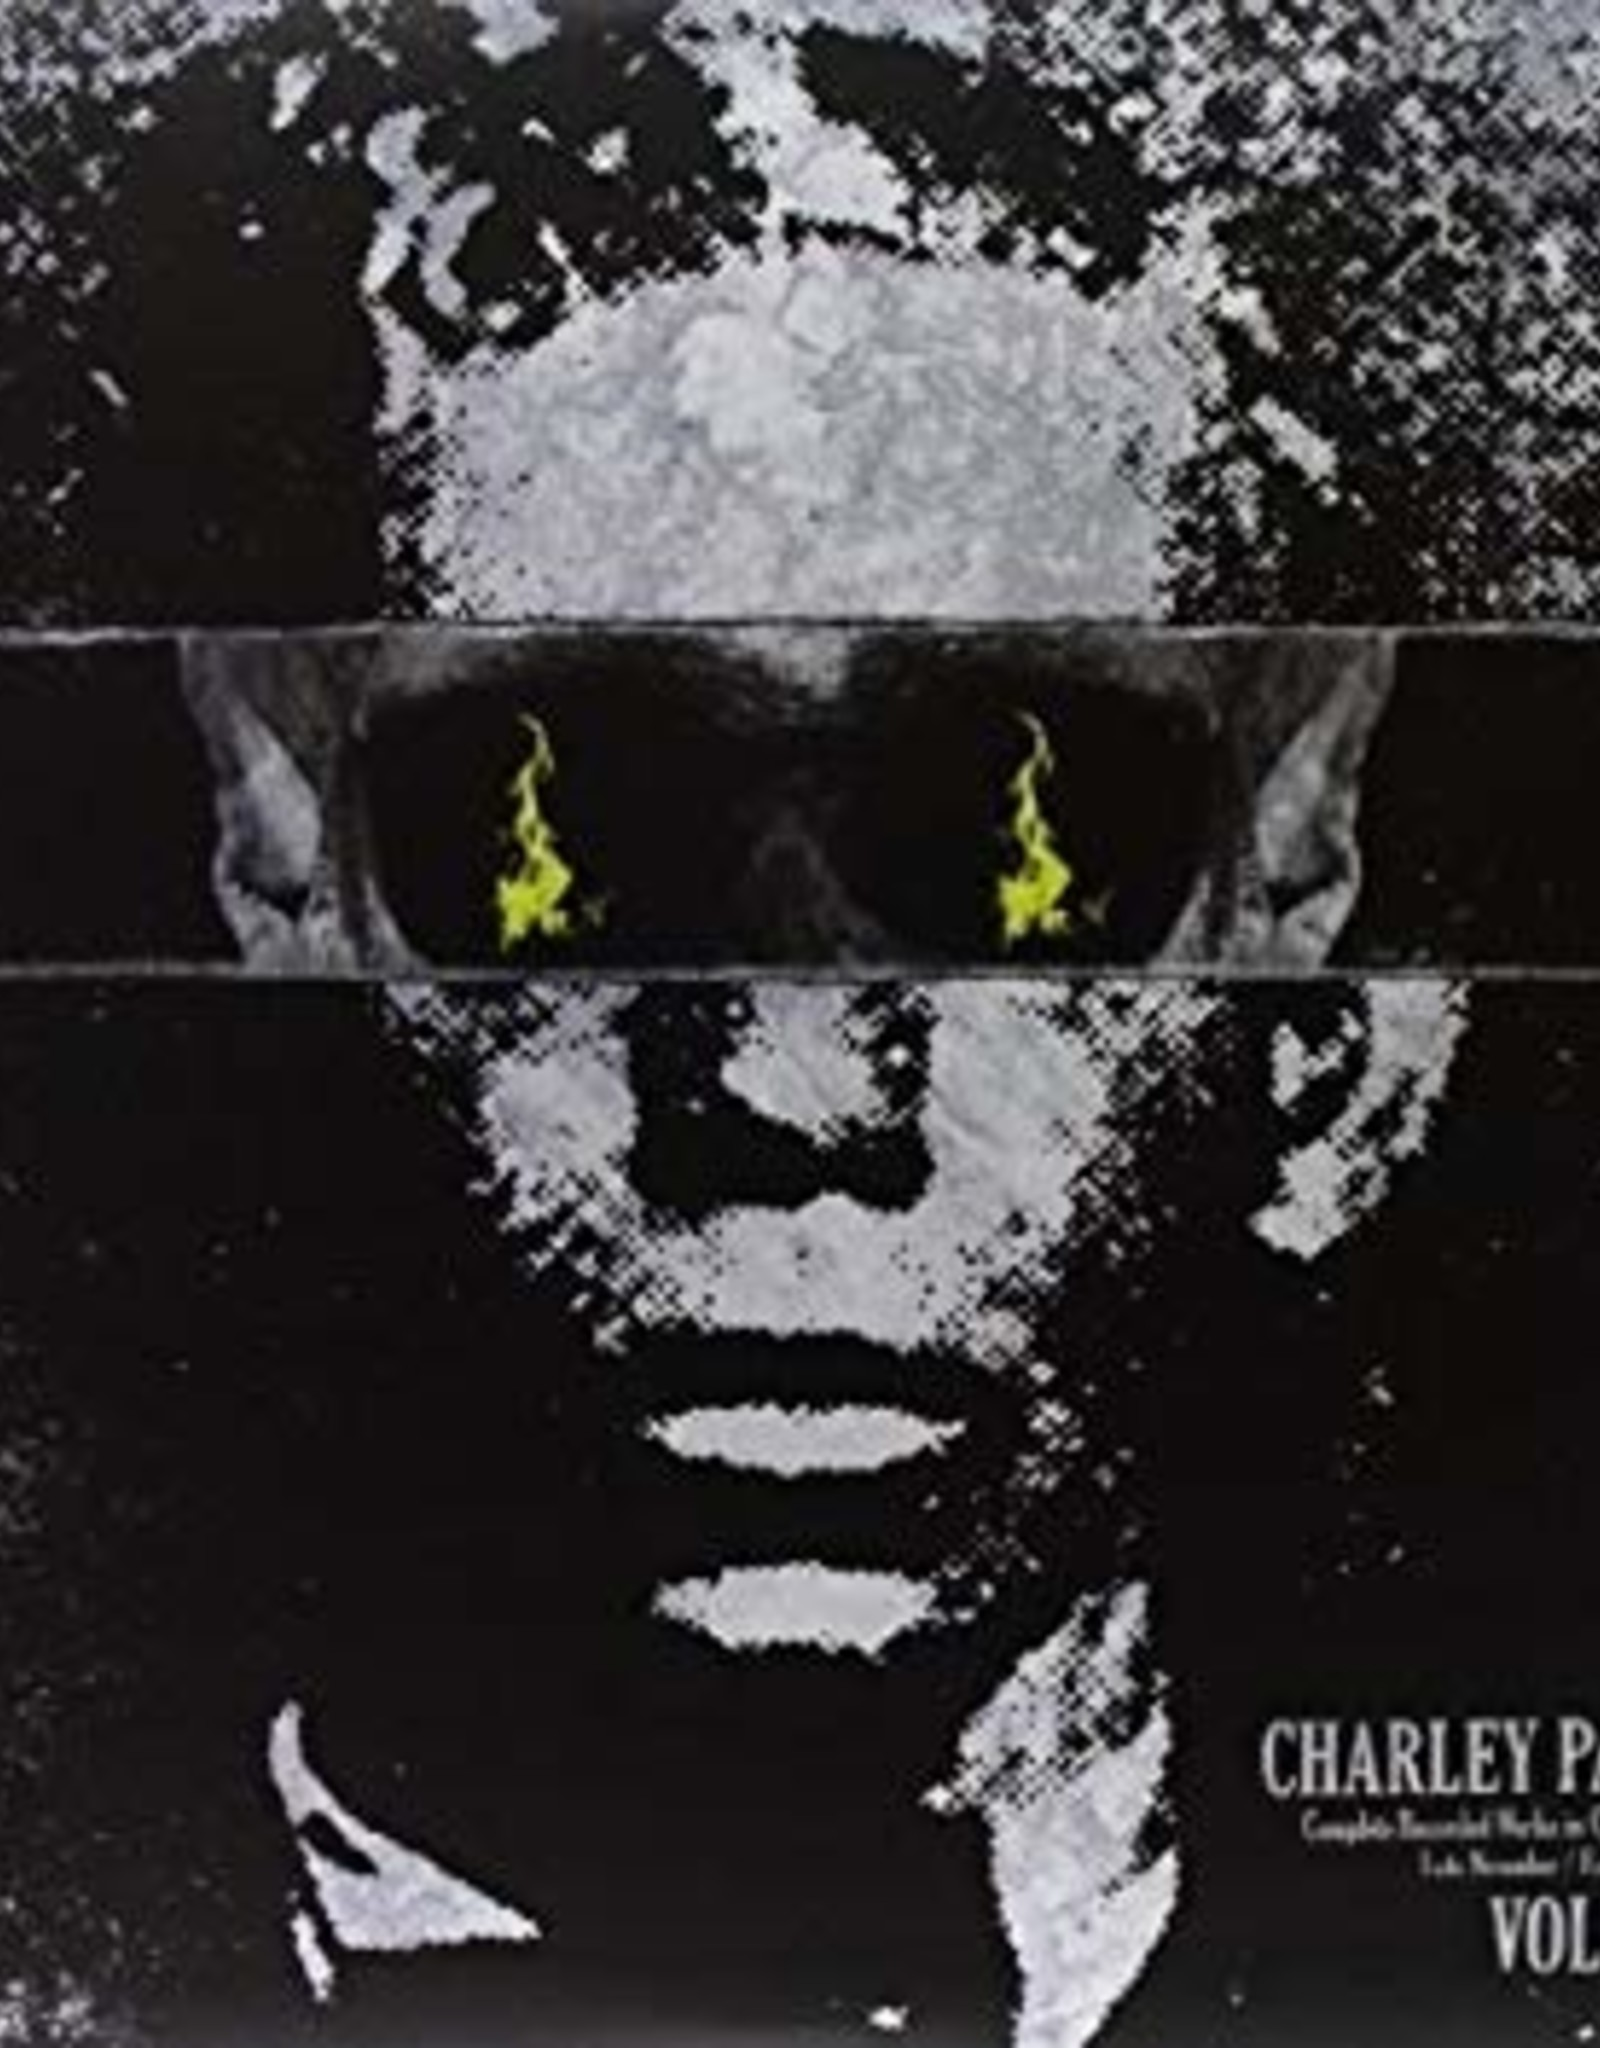 """Charley Patton - The Complete Recorded Works In Chronological Order Volume 2 (12"""" Vinyl)"""